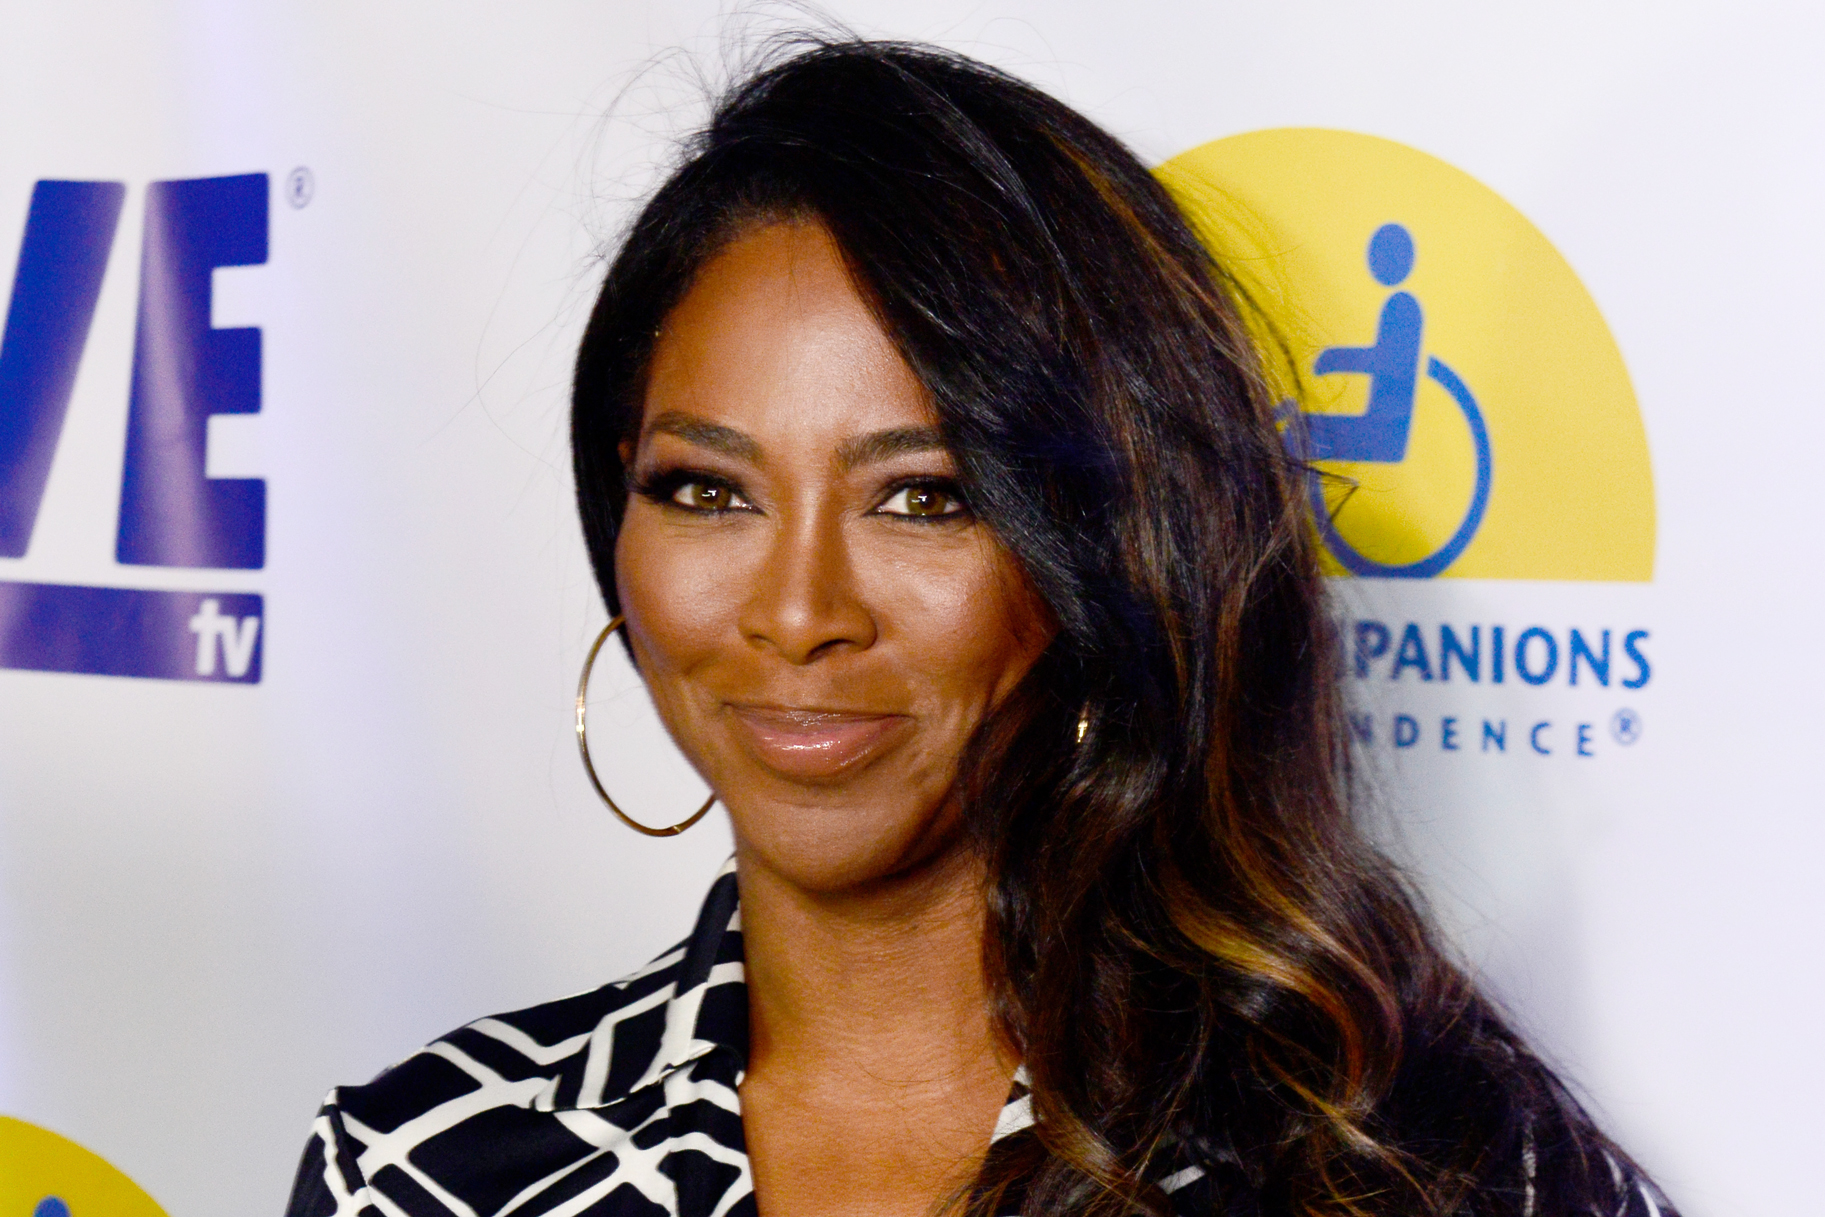 Kenya Moore Annoucens Her Fans That She'll Make An Appearance In The Family Reunion Netflix Series